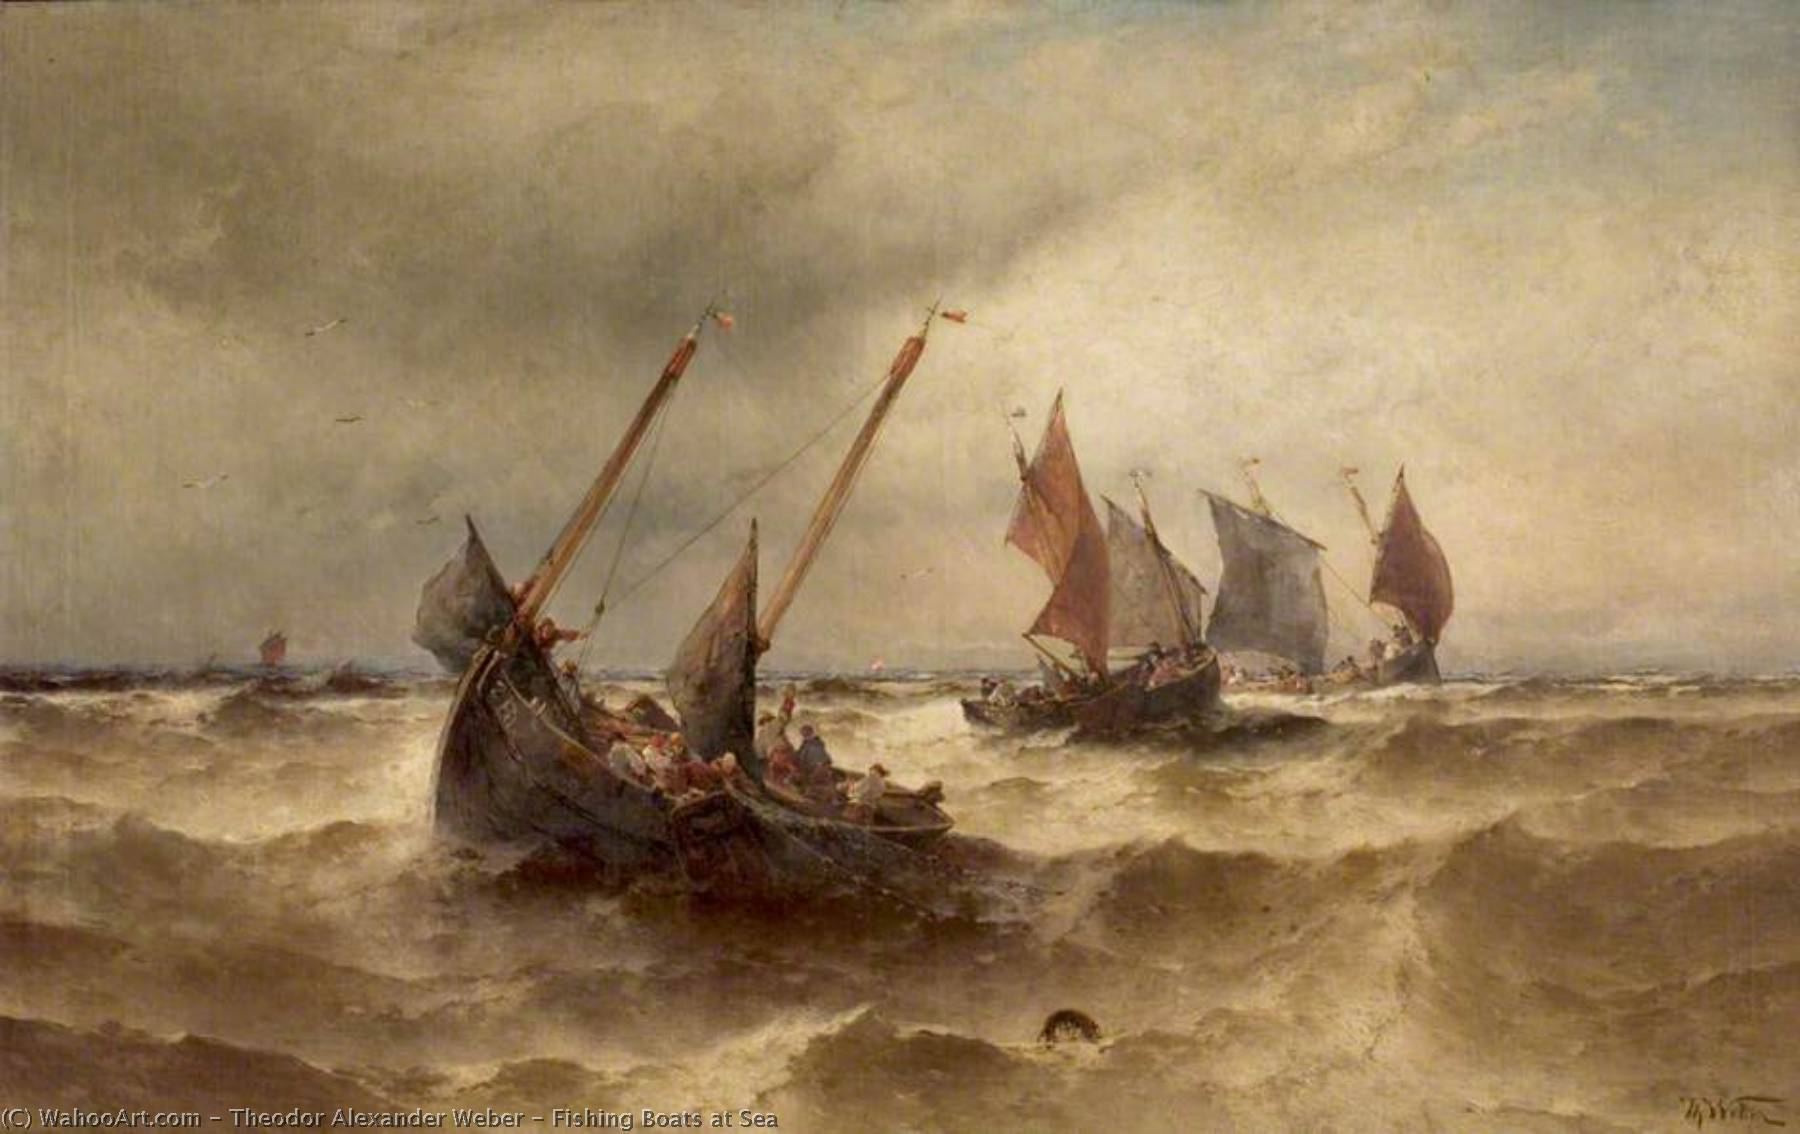 Fishing Boats at Sea by Theodor Alexander Weber (1838-1907) | Oil Painting | WahooArt.com